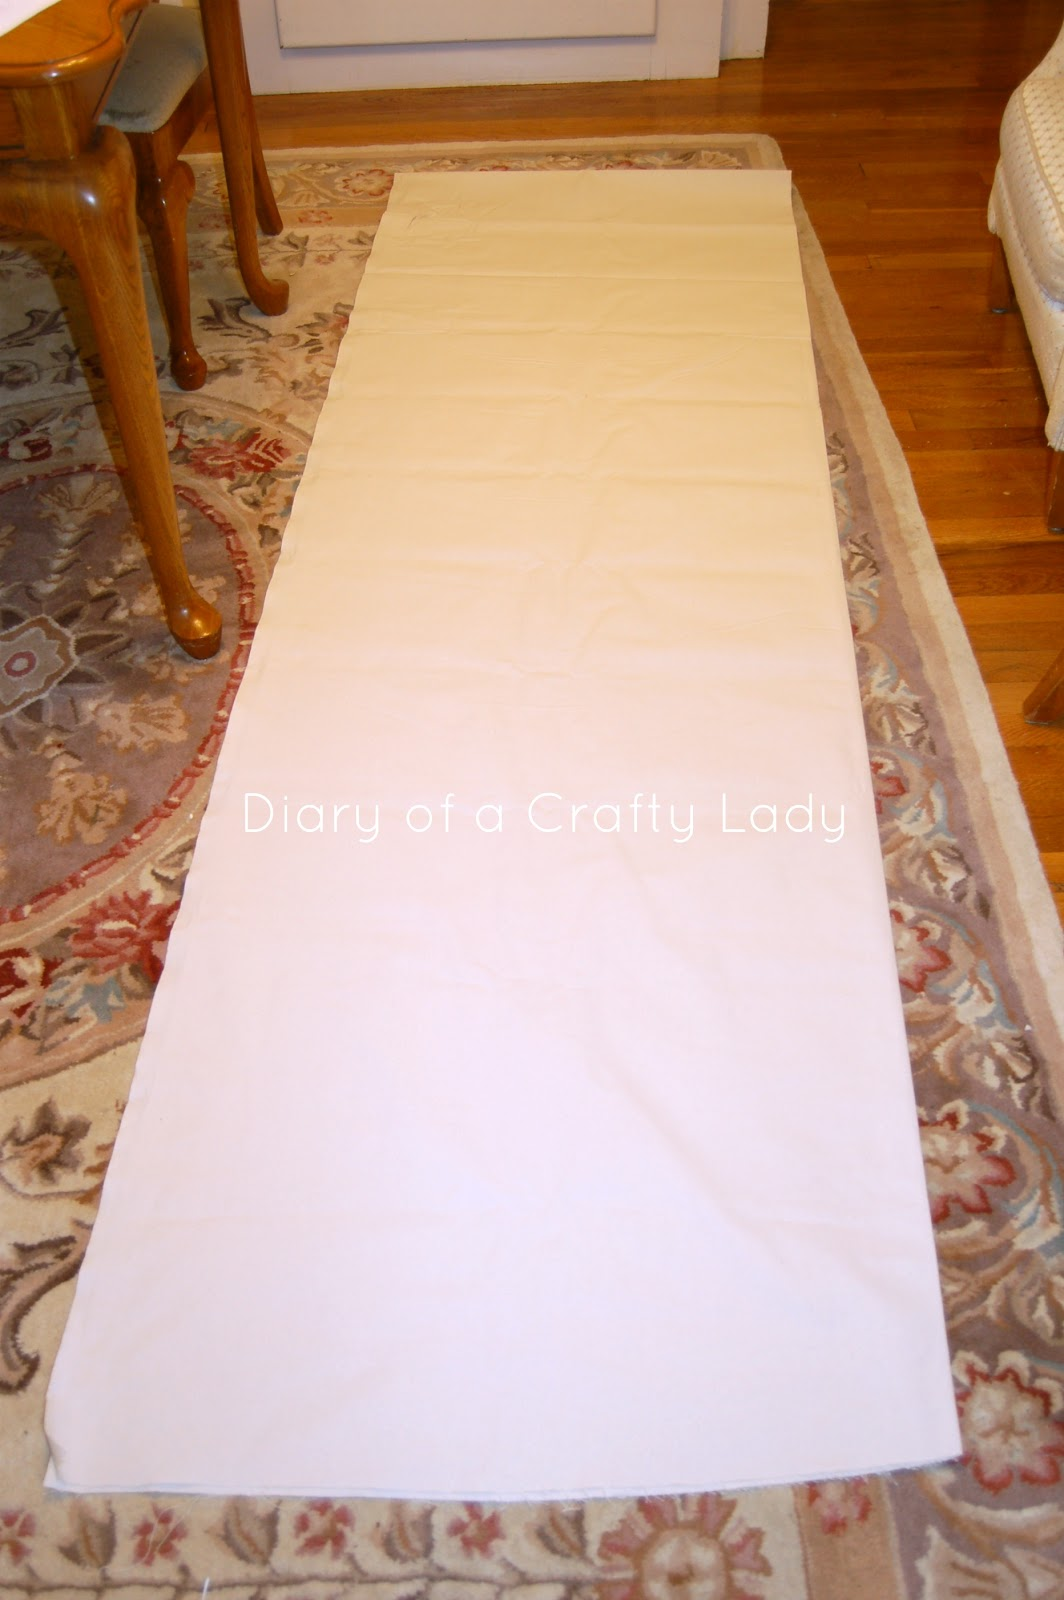 Diary of a crafty lady diy canvas growth chart i cut the entire length of the fabricl 8 feet at 10 wide to make a long strip for the growth chart i then used a zig zag stitch to sew along nvjuhfo Image collections